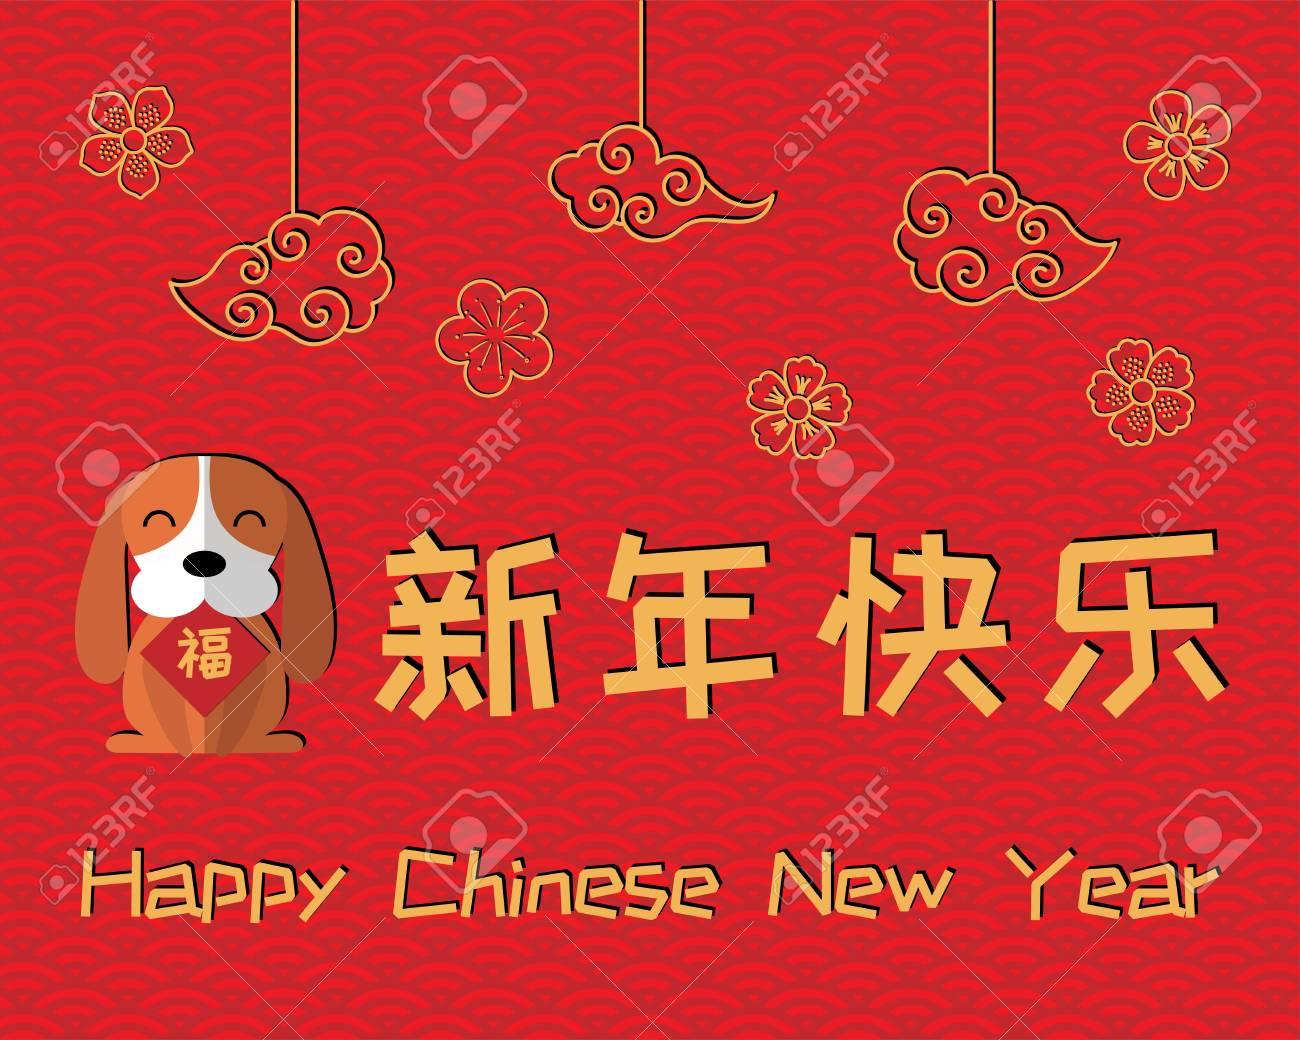 2018 chinese new year greeting card banner with cute funny dog holding card with character